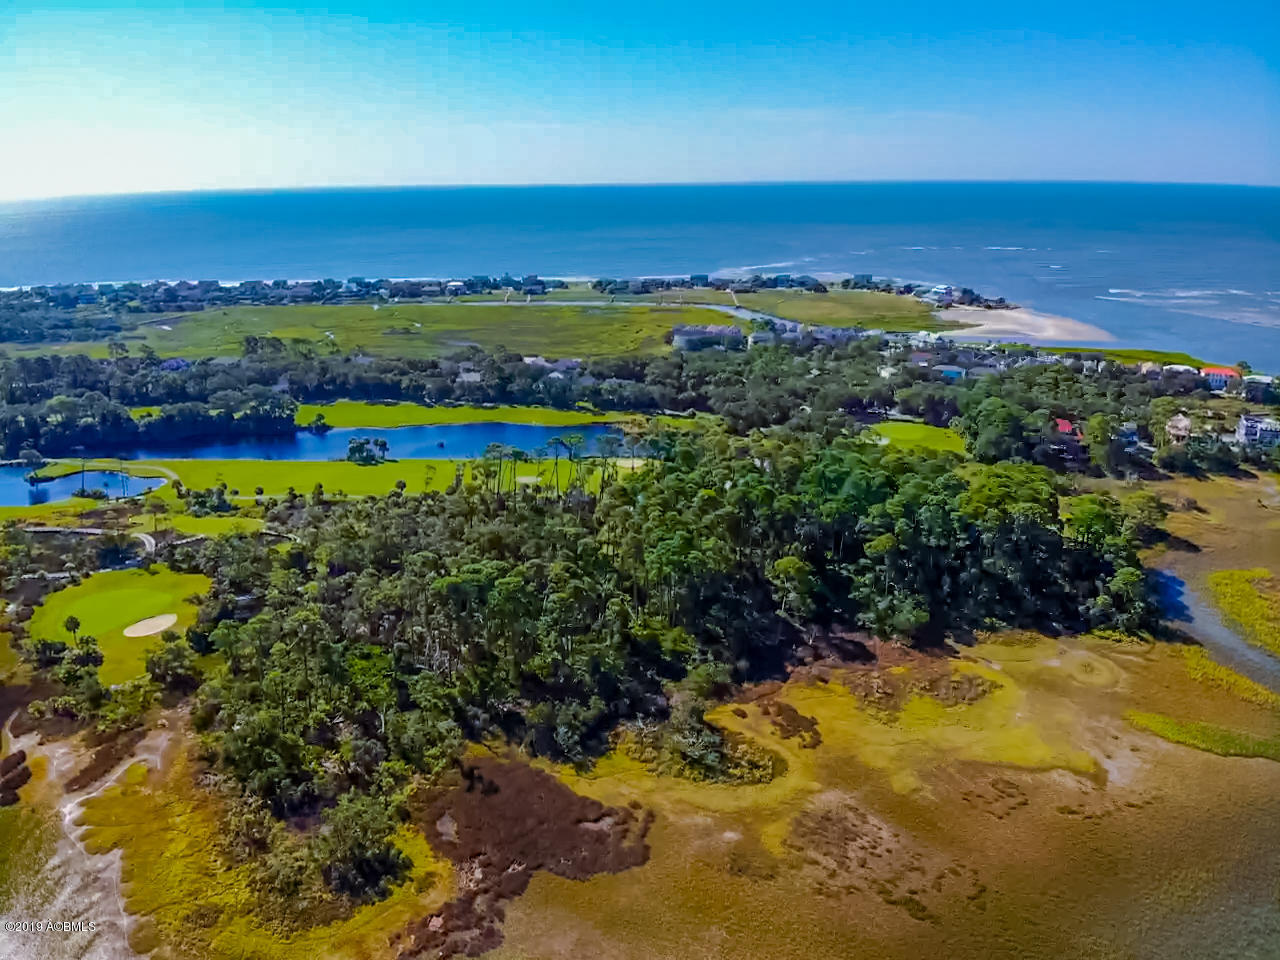 Photo of Tbd Ocean Creek Boulevard, Fripp Island, SC 29920